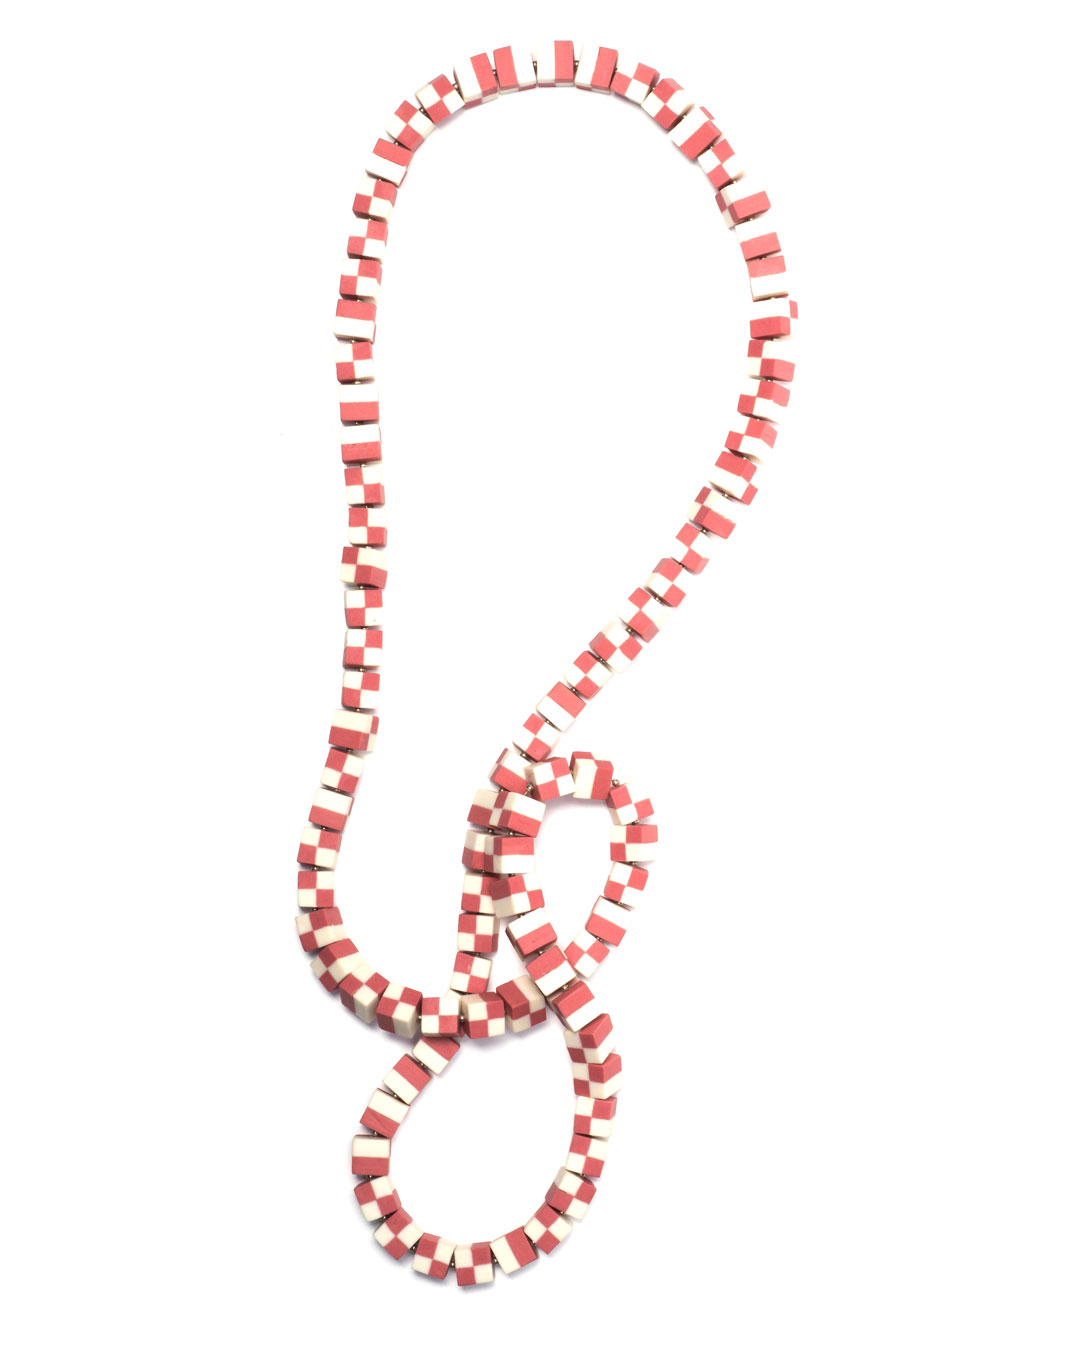 Nina Sajet, untitled, 2017, necklace; porcelain, pigment, wire, gilded silver, 420 x 40 x 10 mm, €1100